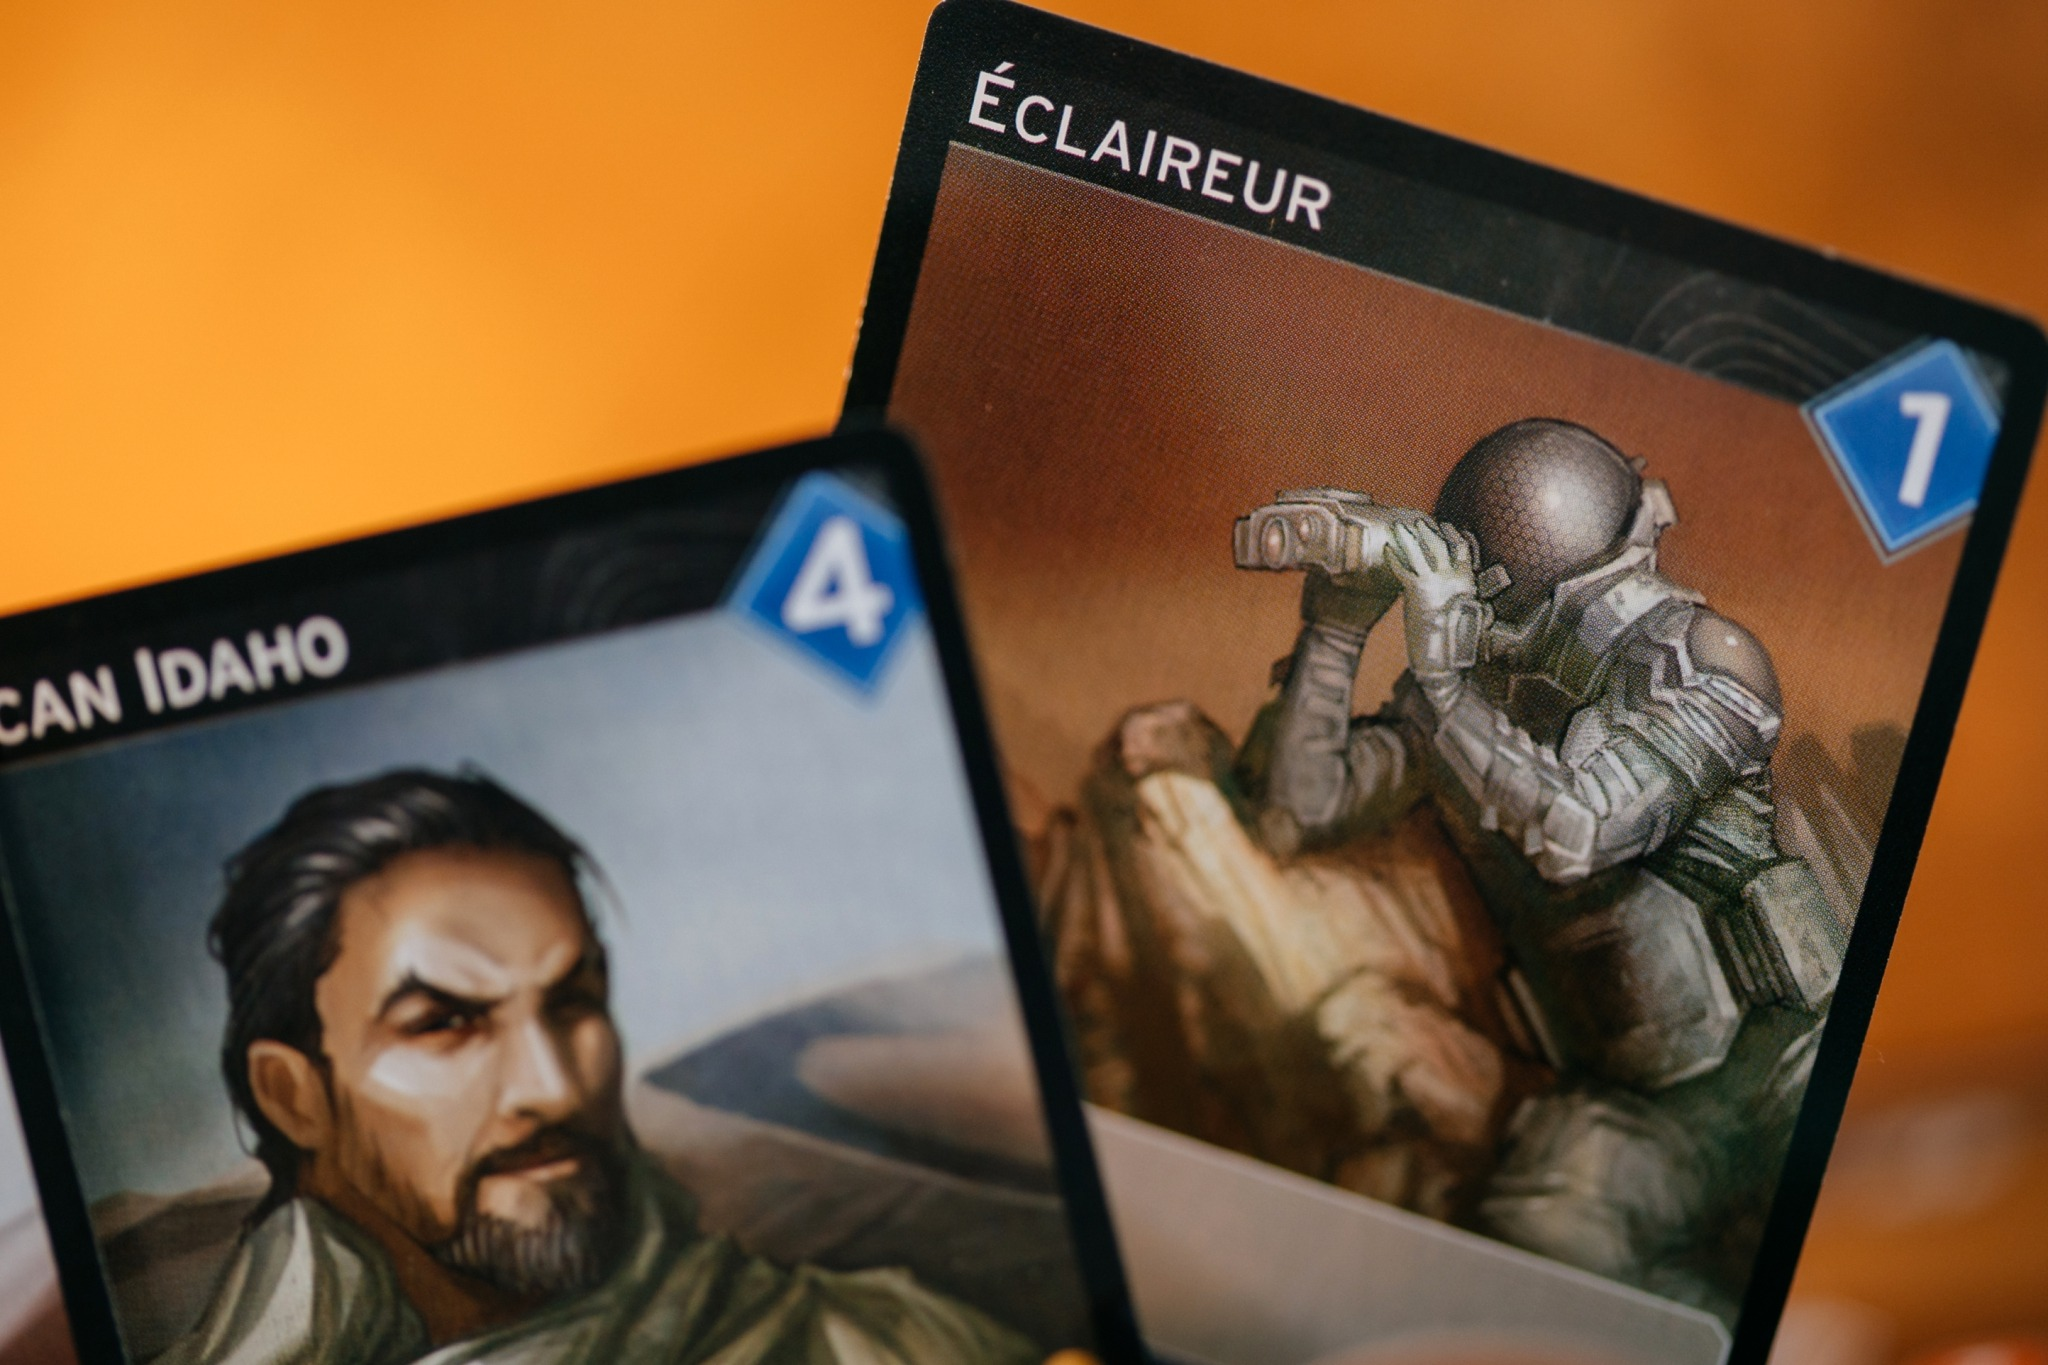 Dune imperium lucky duck games boardgame